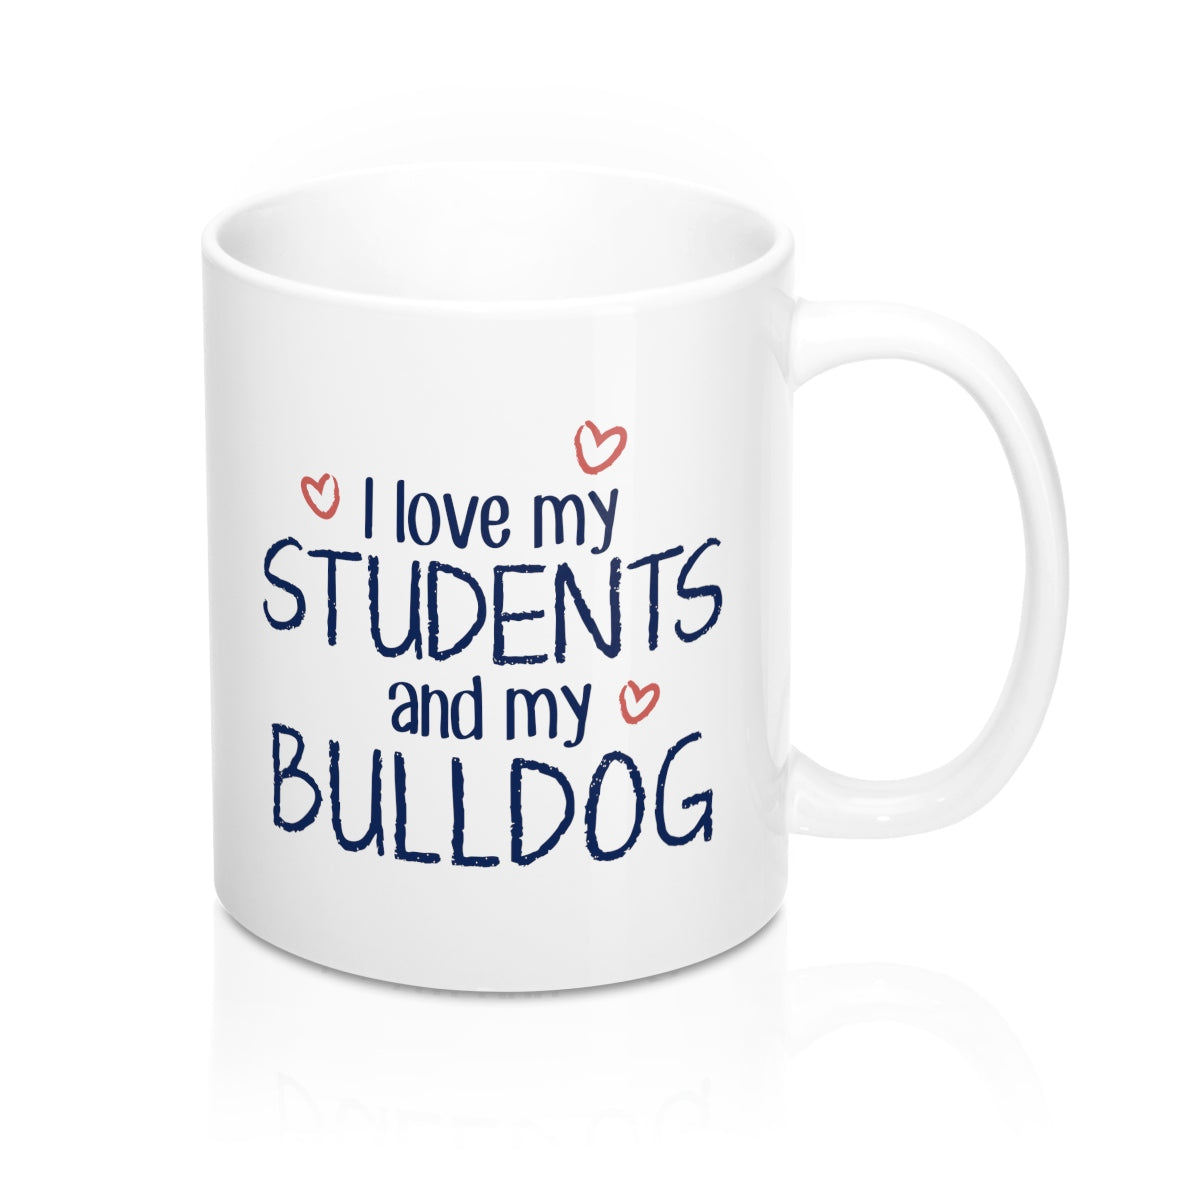 I Love My Students and My Bulldog Coffee Mug